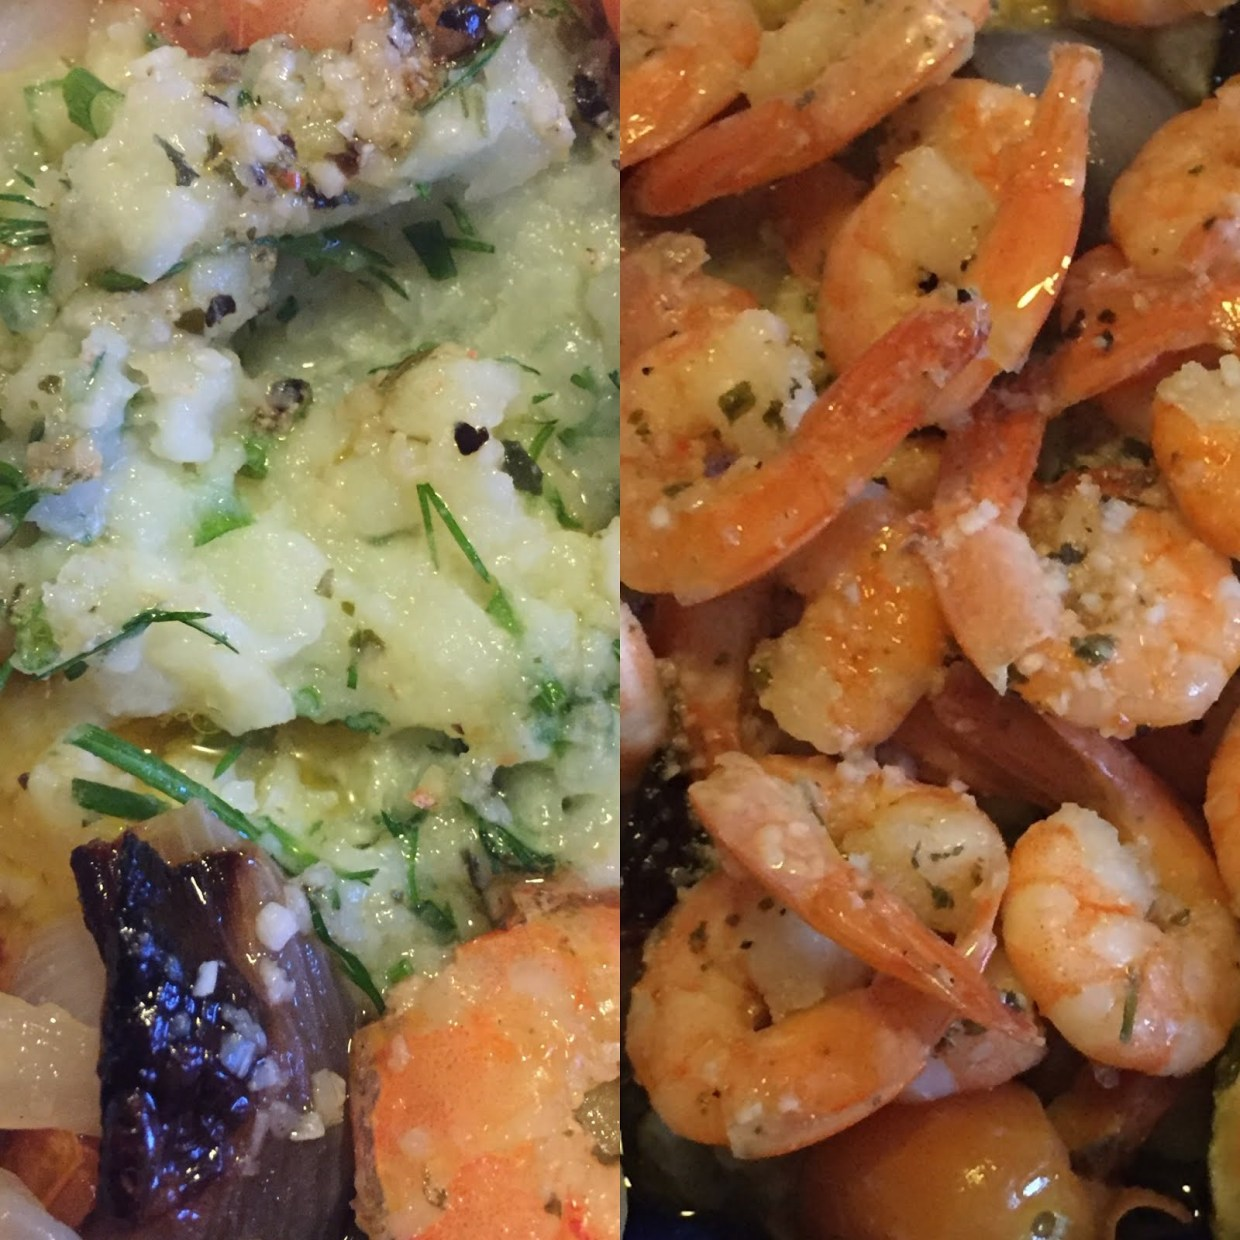 Garlic prawns, Mash & Baked Vegetables